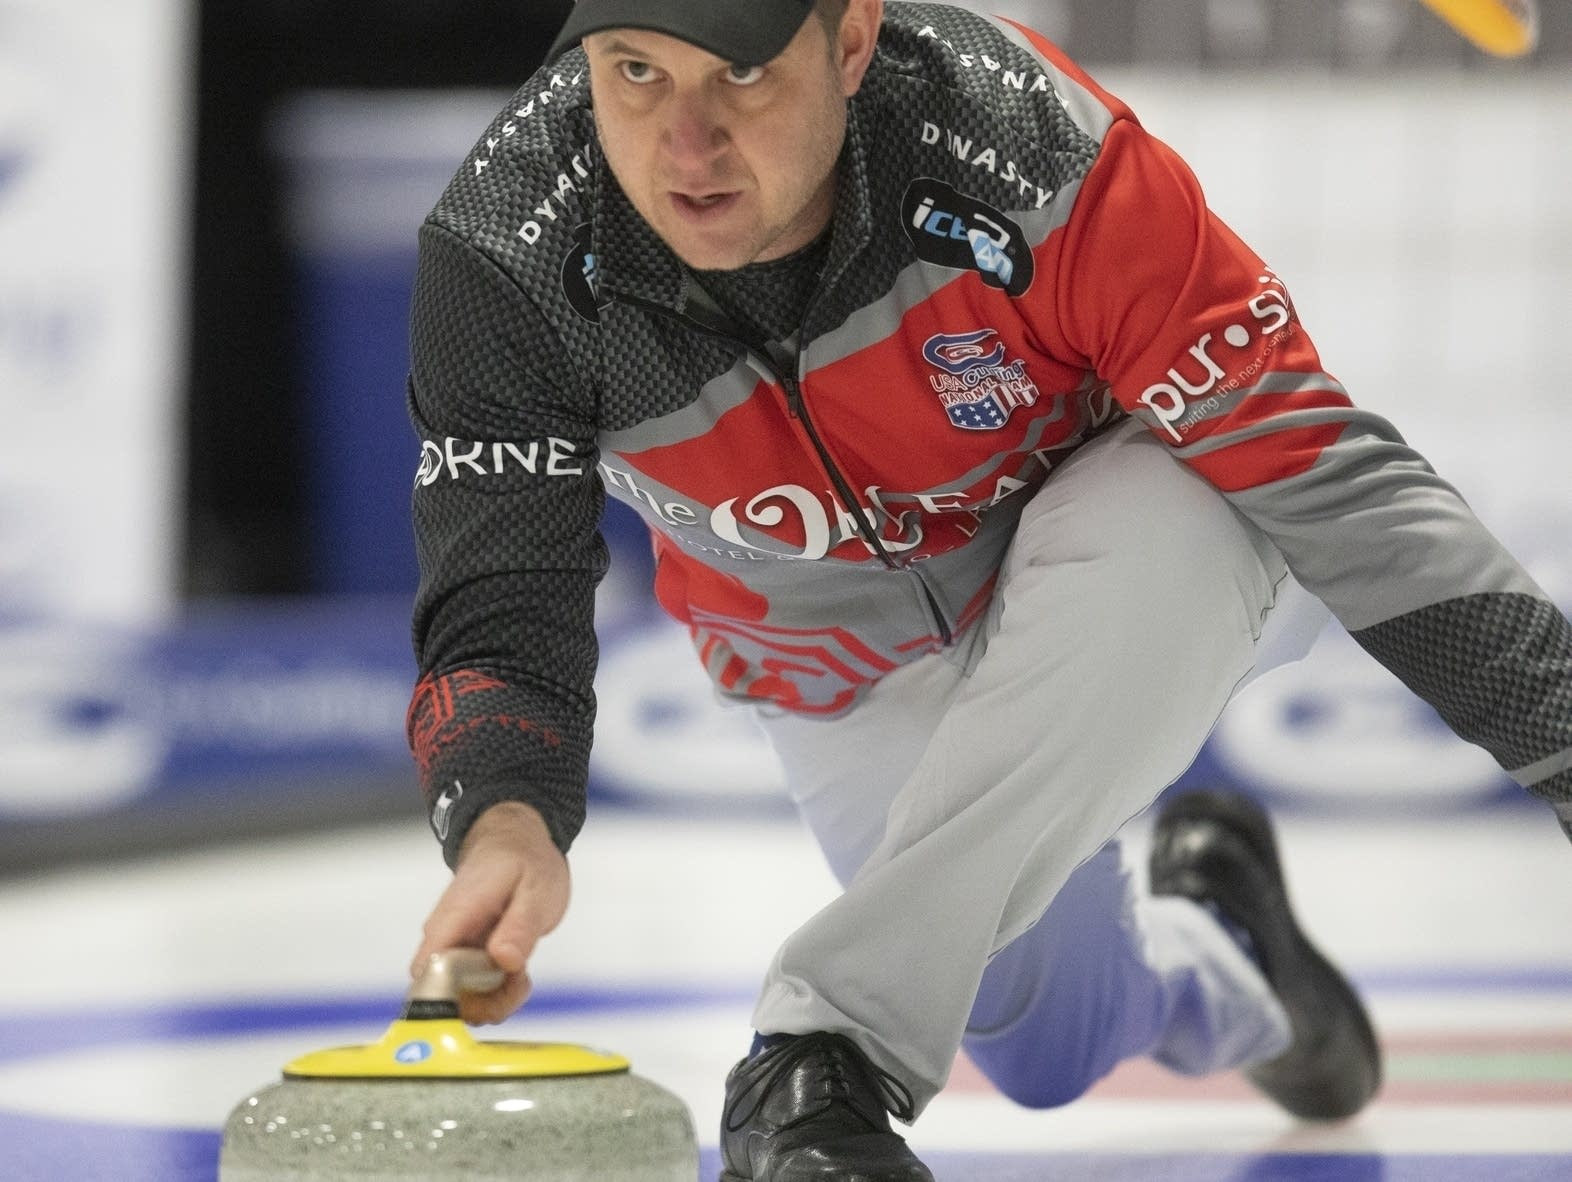 John Shuster delivers a stone